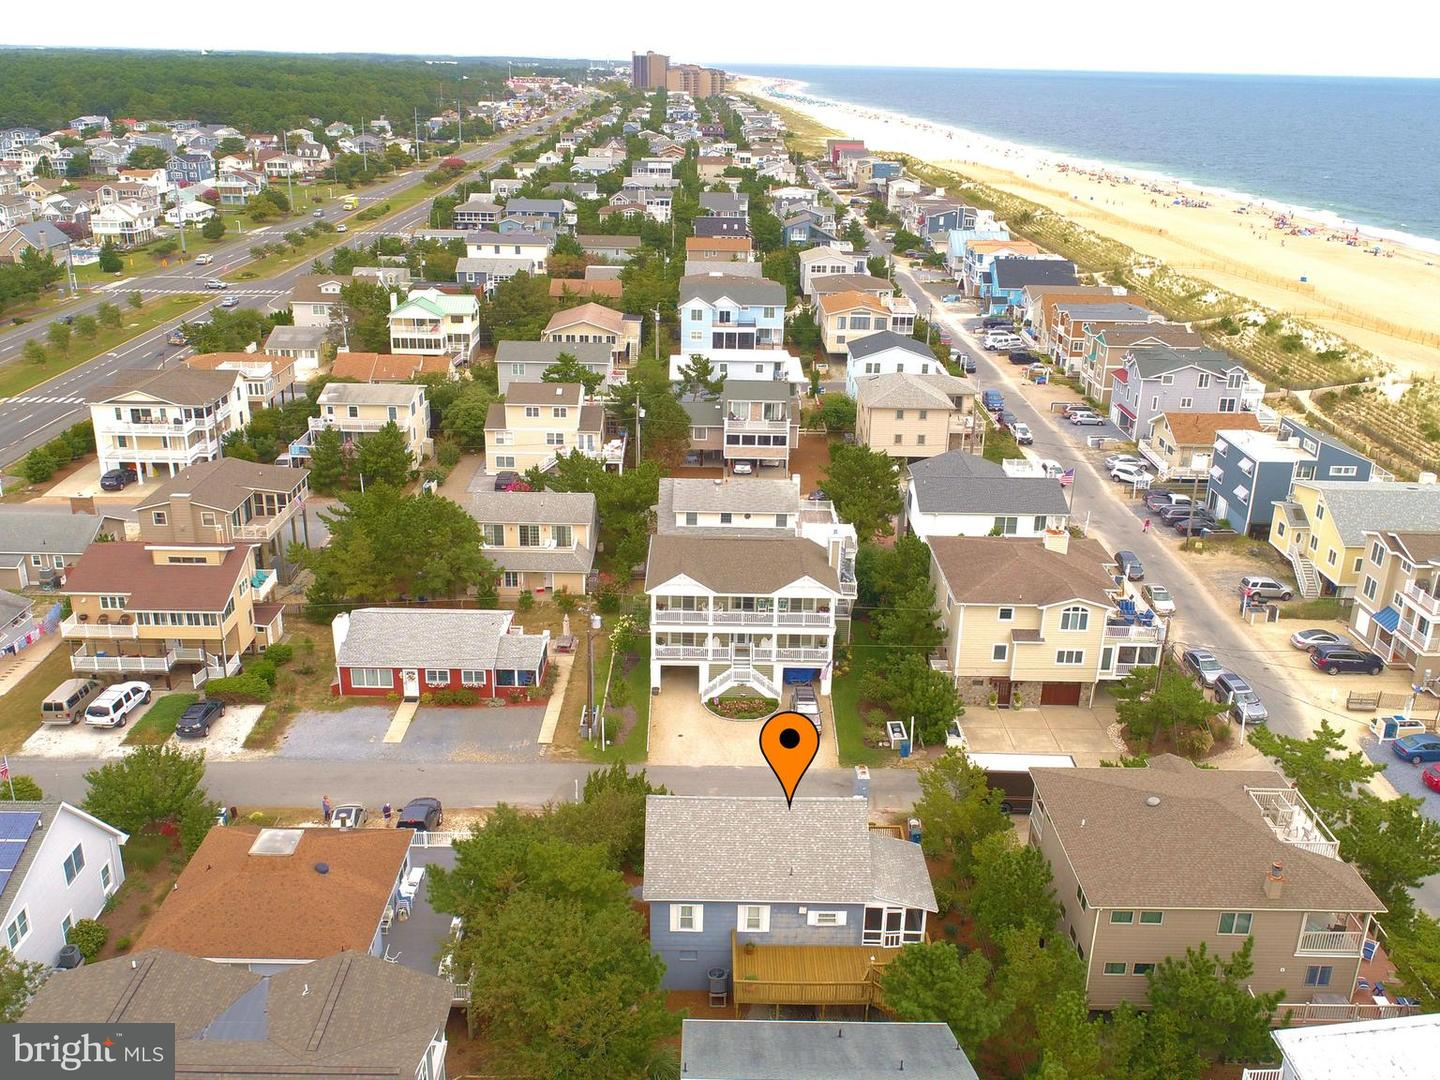 1002299338-300501703089-2018-08-30-10-08-41 4 S 4th St | South Bethany, De Real Estate For Sale | MLS# 1002299338  - Suzanne Macnab